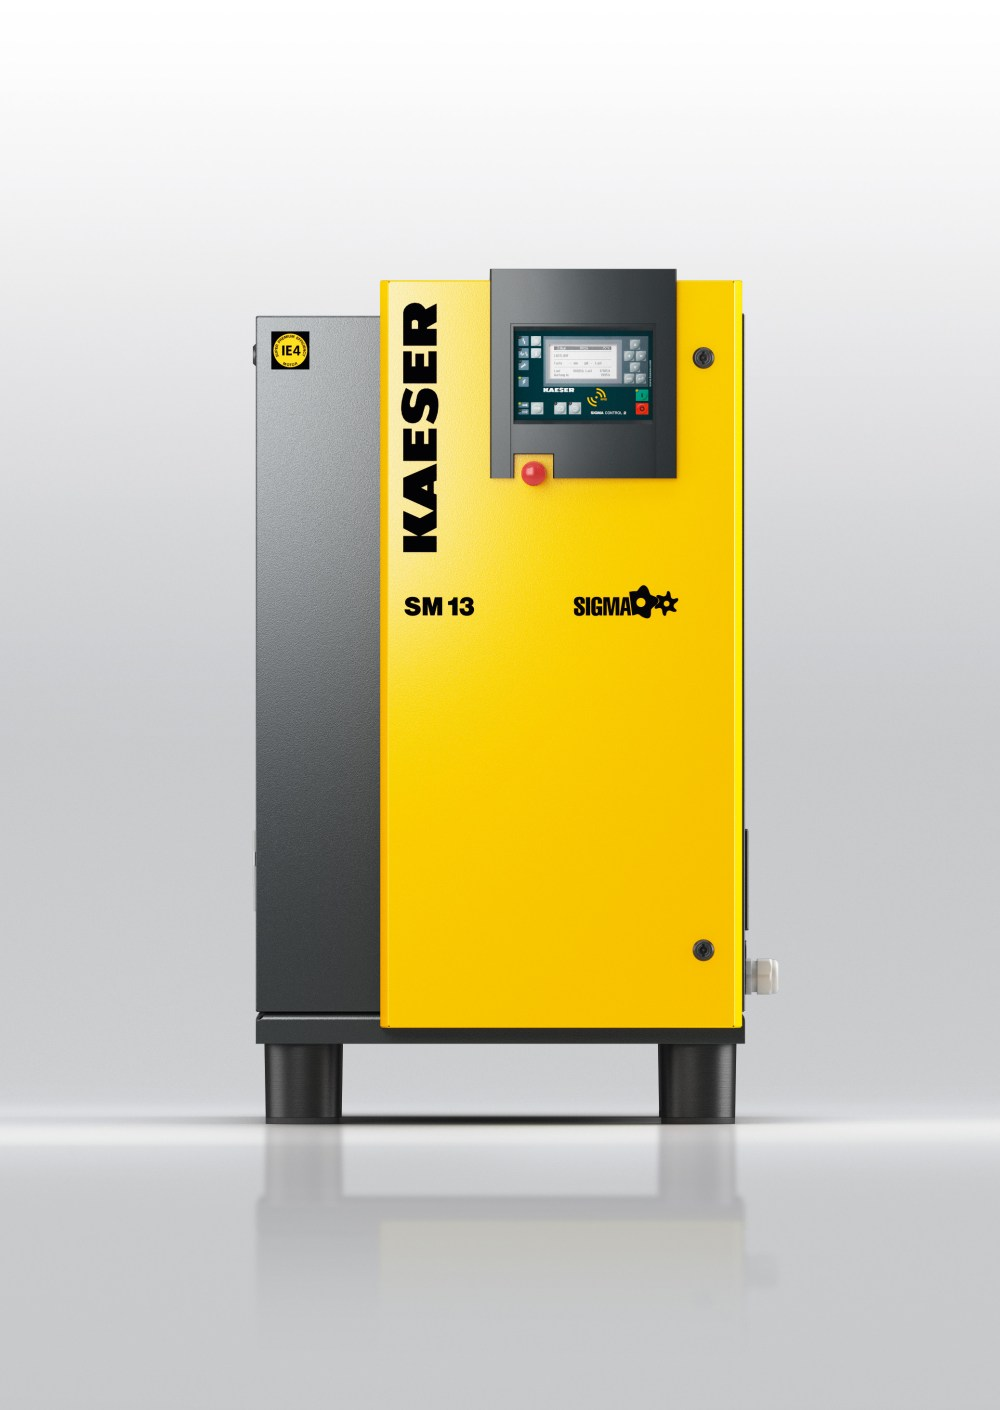 medium resolution of sm series rotary screw compressors are powerful quiet efficient and exceptionally service friendly in addition to the standard models versions featuring